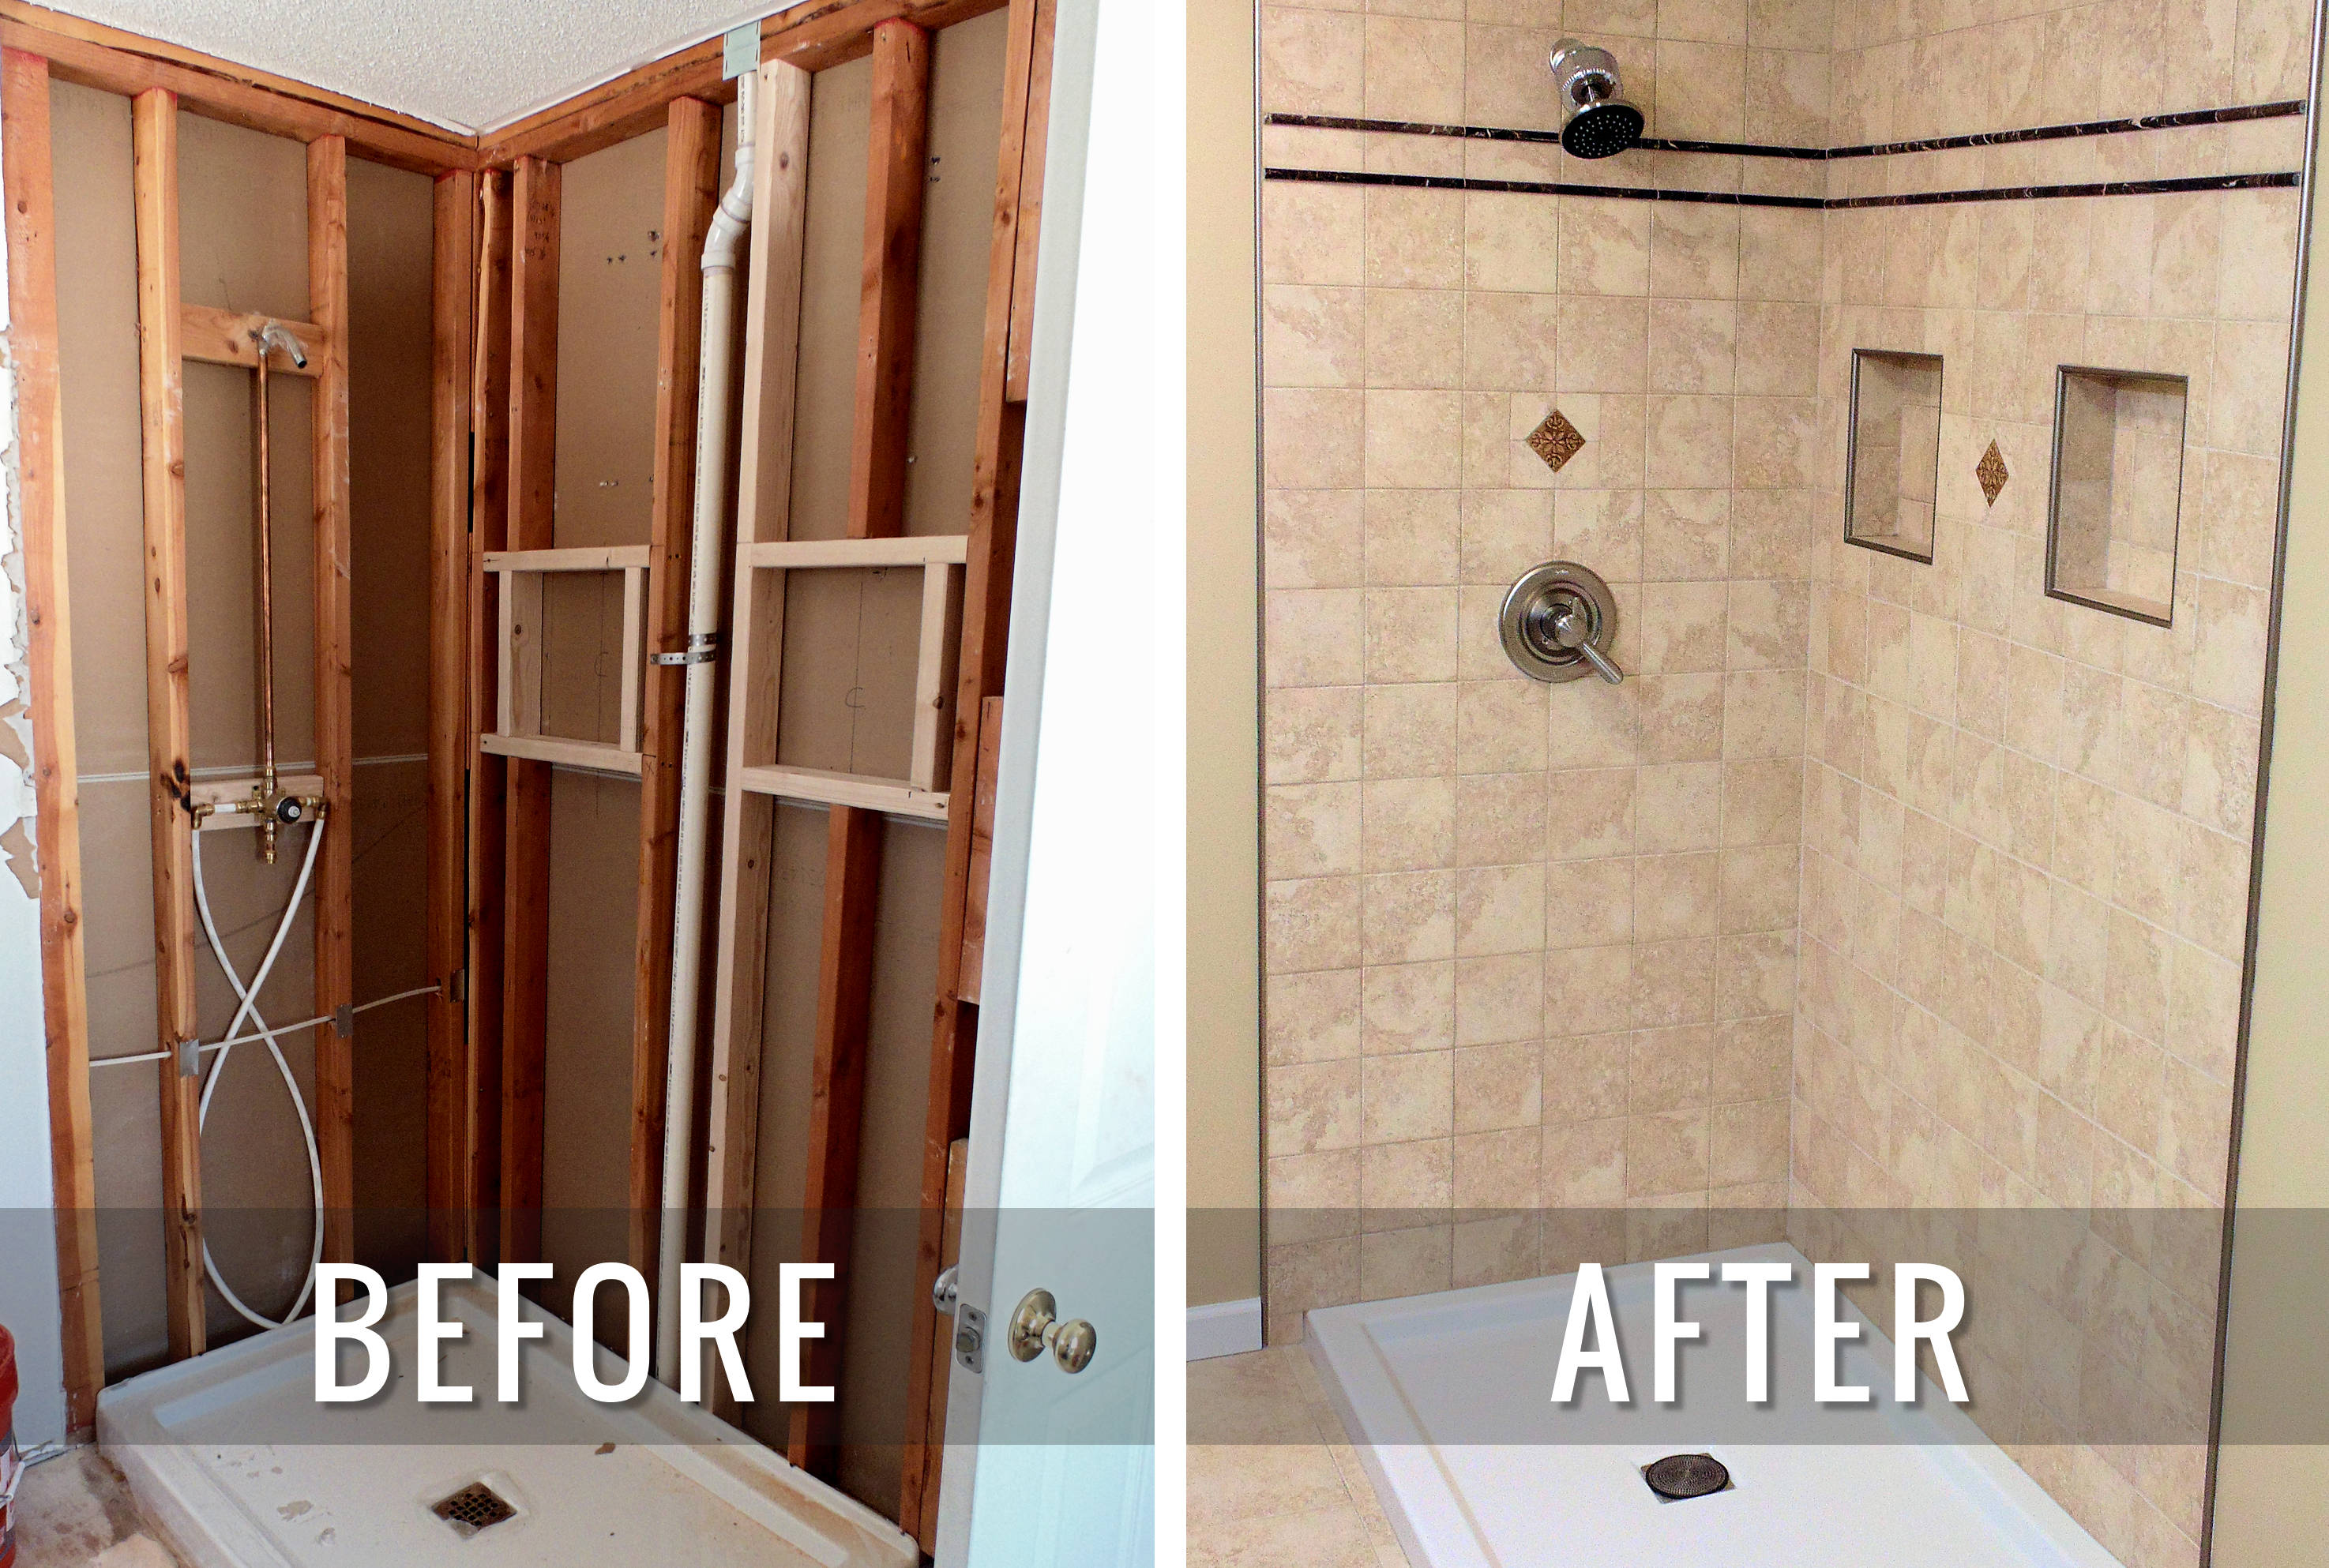 Hartford Connecticut Home Improvement Company — Bathroom Renovation